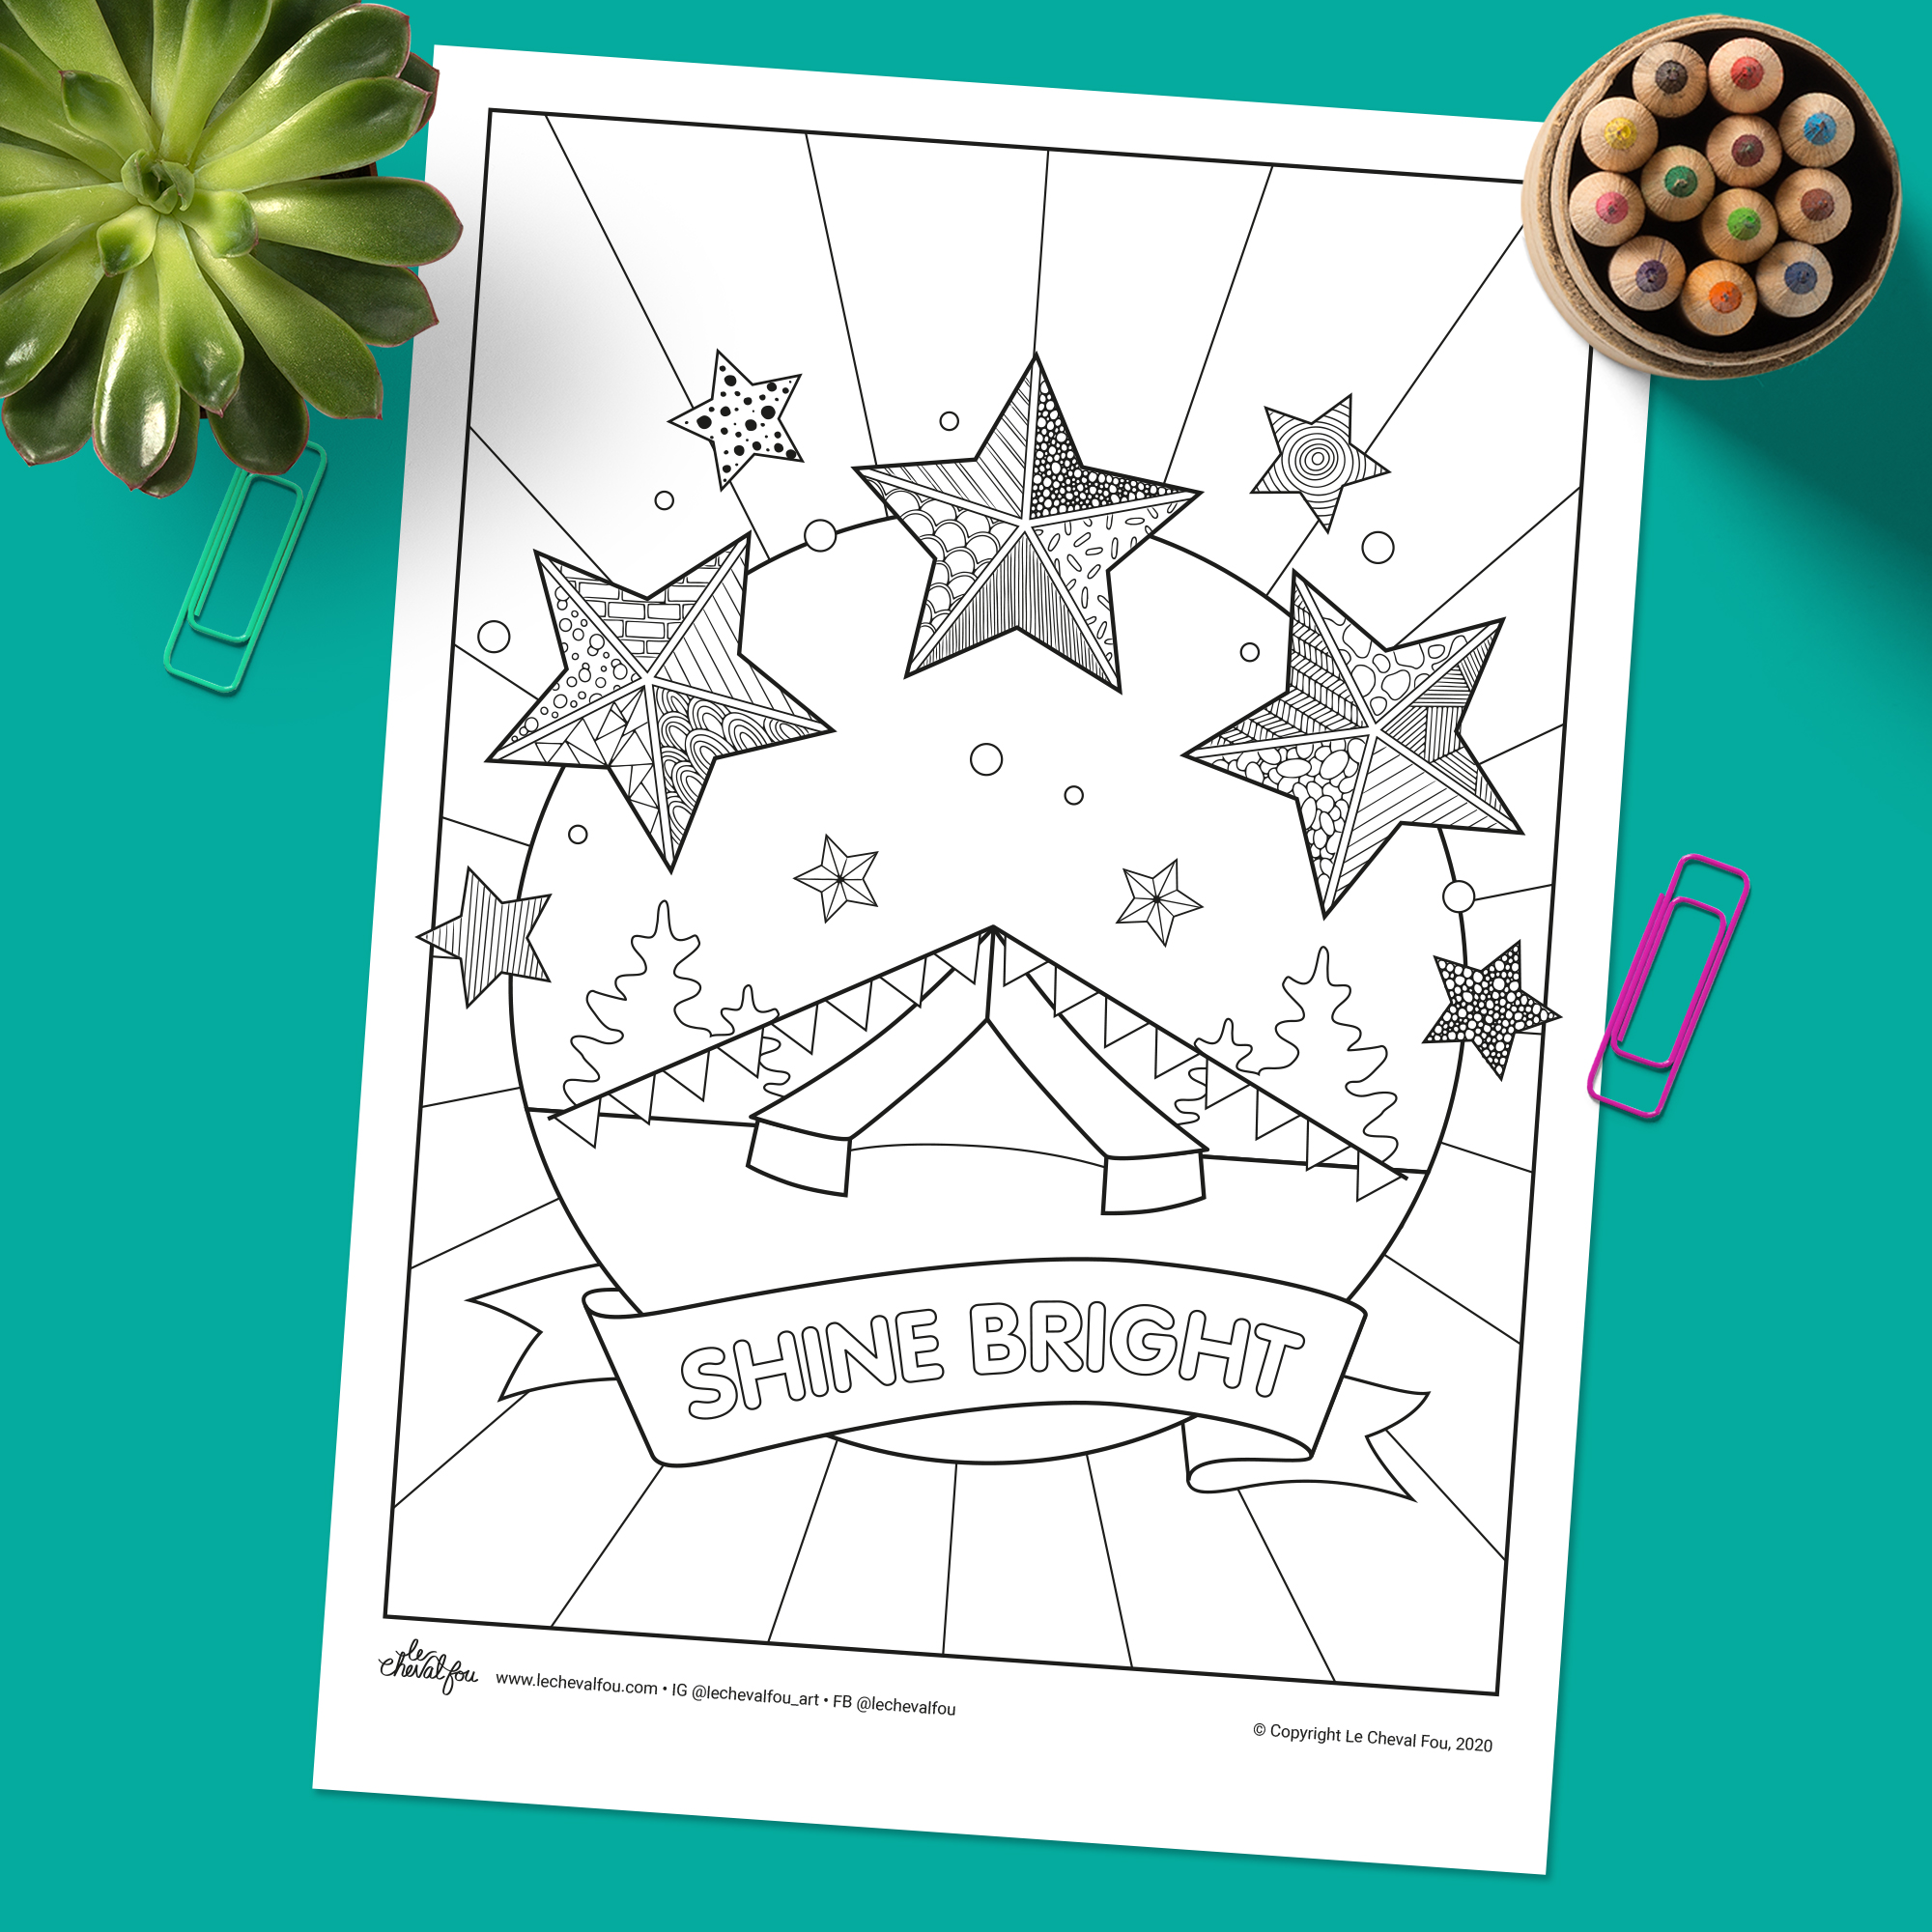 This fun and nostalgic colouring sheet features zentangle stars, a bell tent, bunting and a banner saying Shin Bright. Perfect for kids and adults alike.